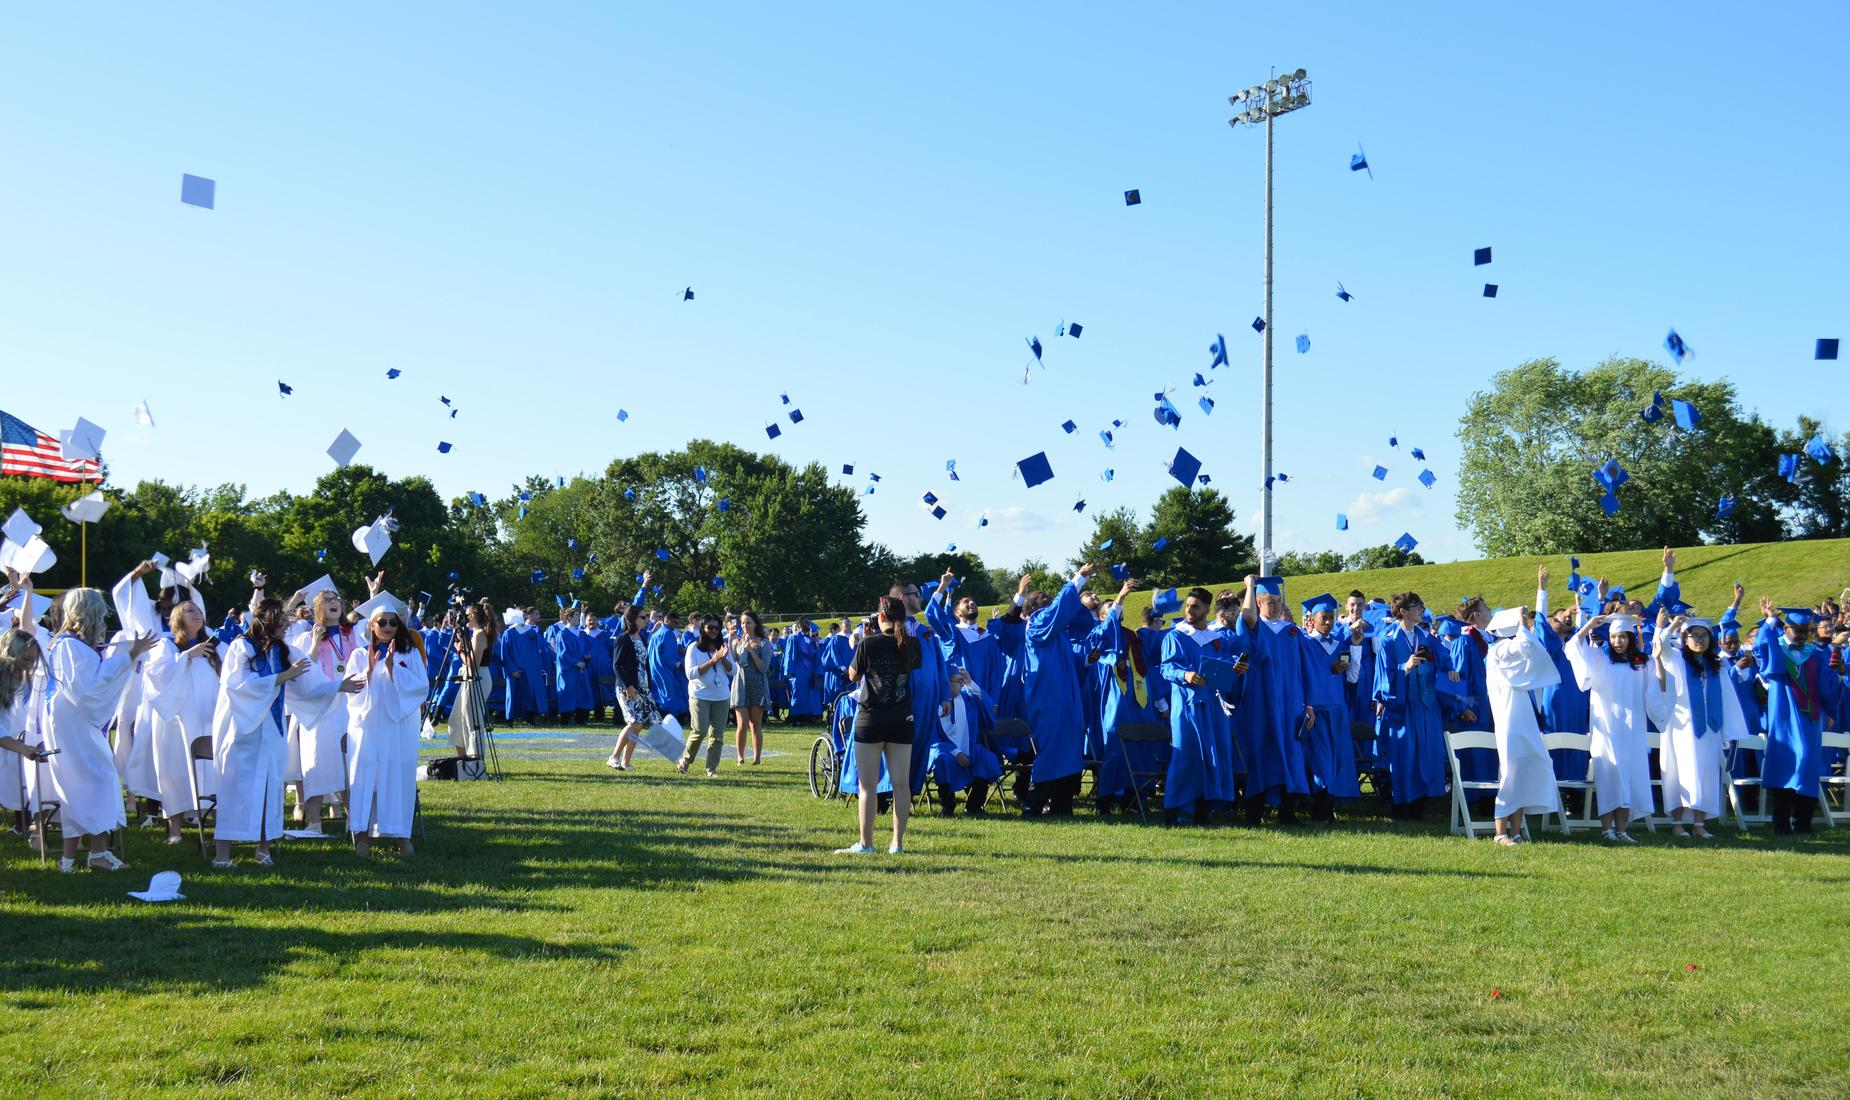 Class of 2019 graduates, in white and royal blue gowns, toss their caps in the air